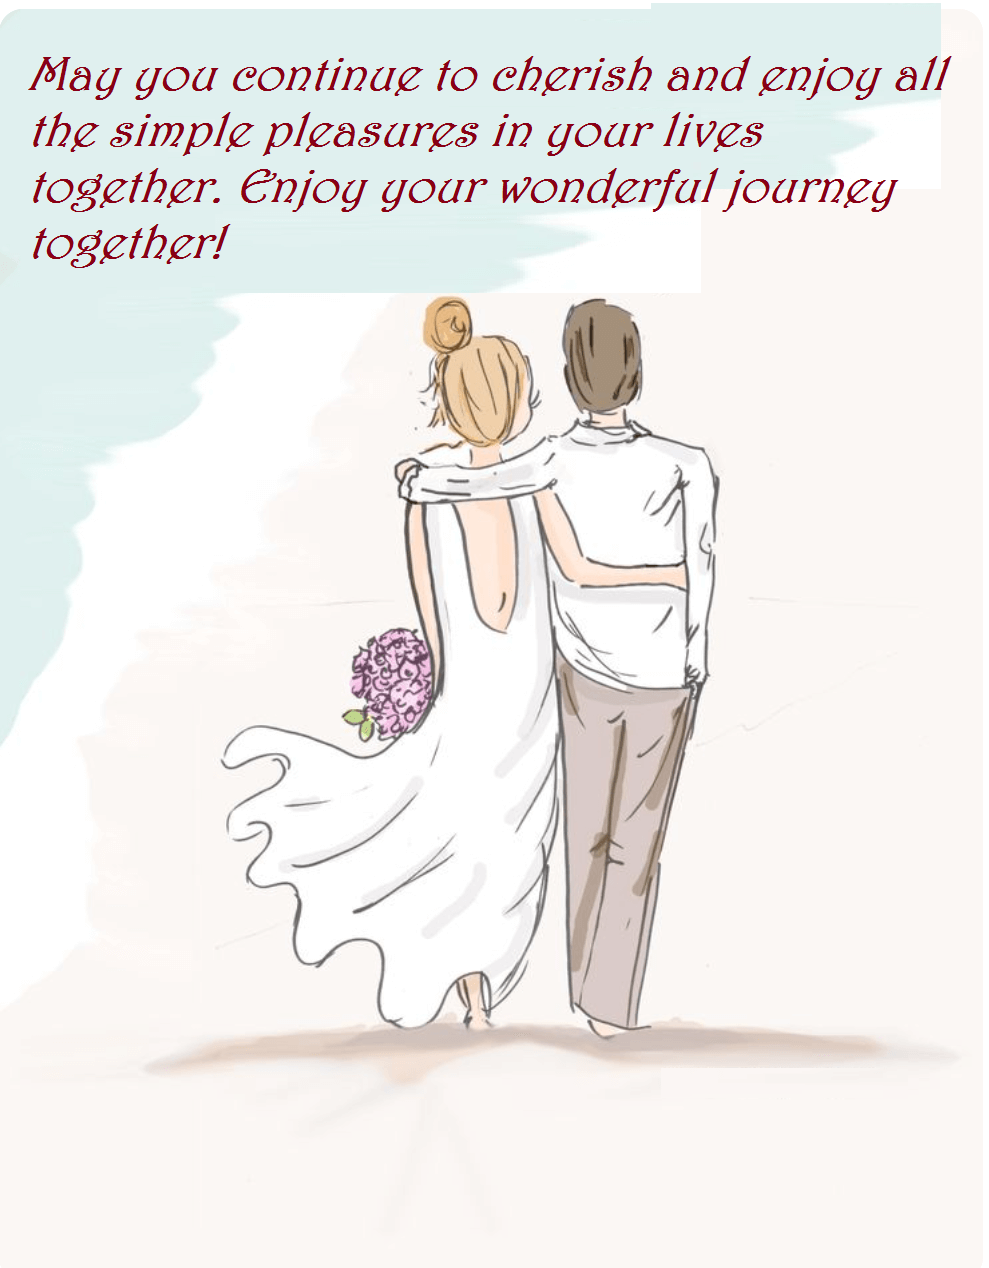 5th Marriage Anniversary Quotes Wishes Images Happy Anniversary Quotes Marriage Anniversary Quotes Heather Stillufsen Quotes